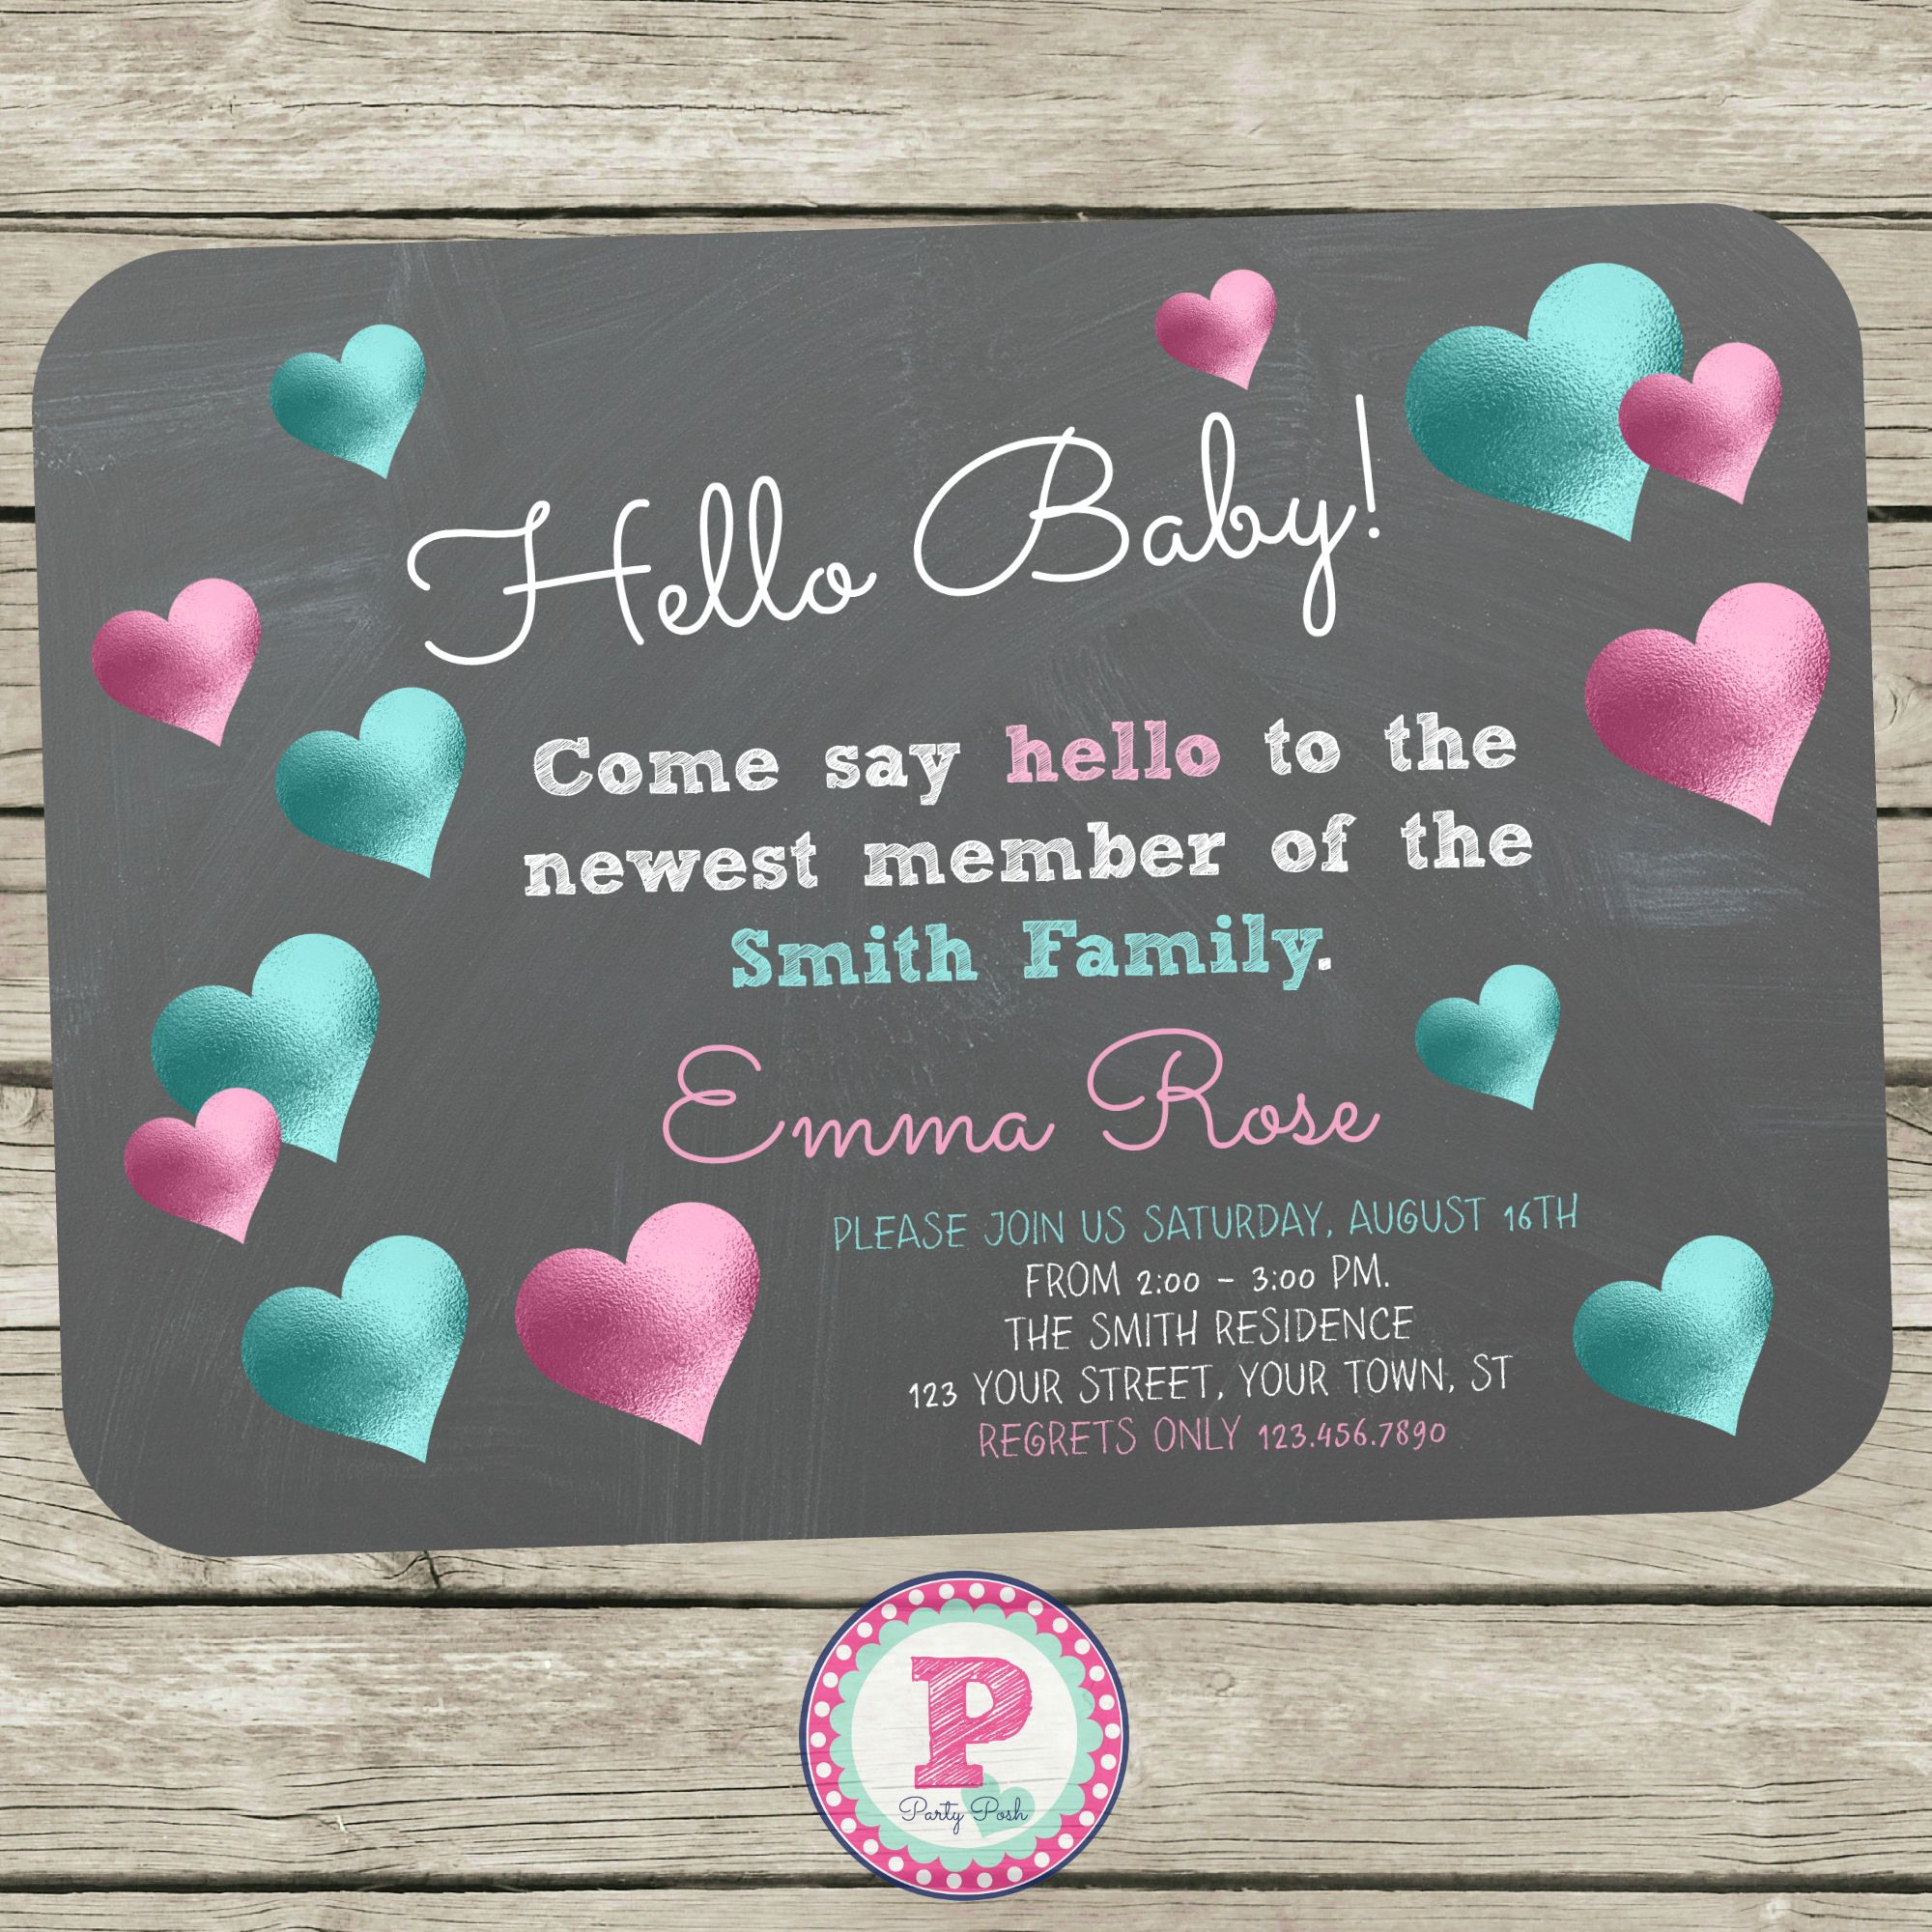 Hello Baby Invitations For A Meet The Baby Party